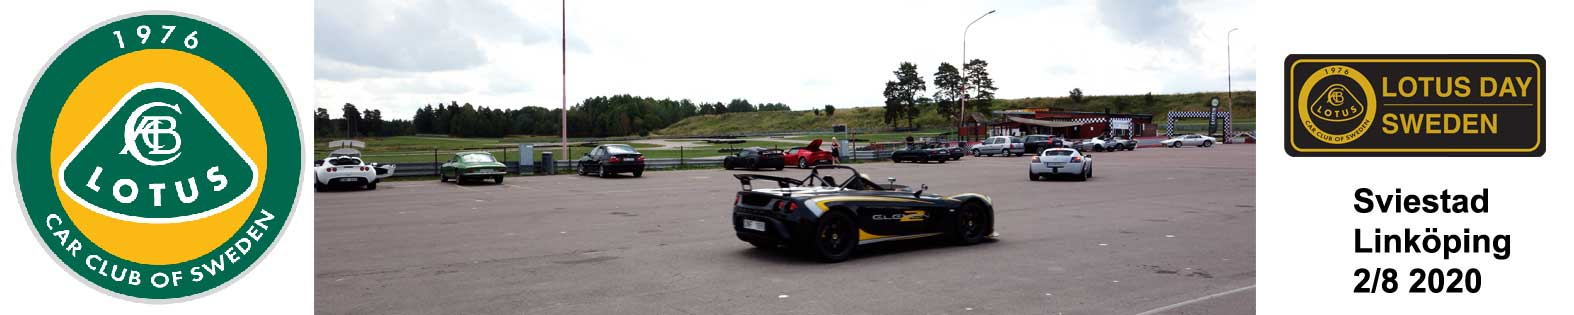 Lotus Car Club of Sweden